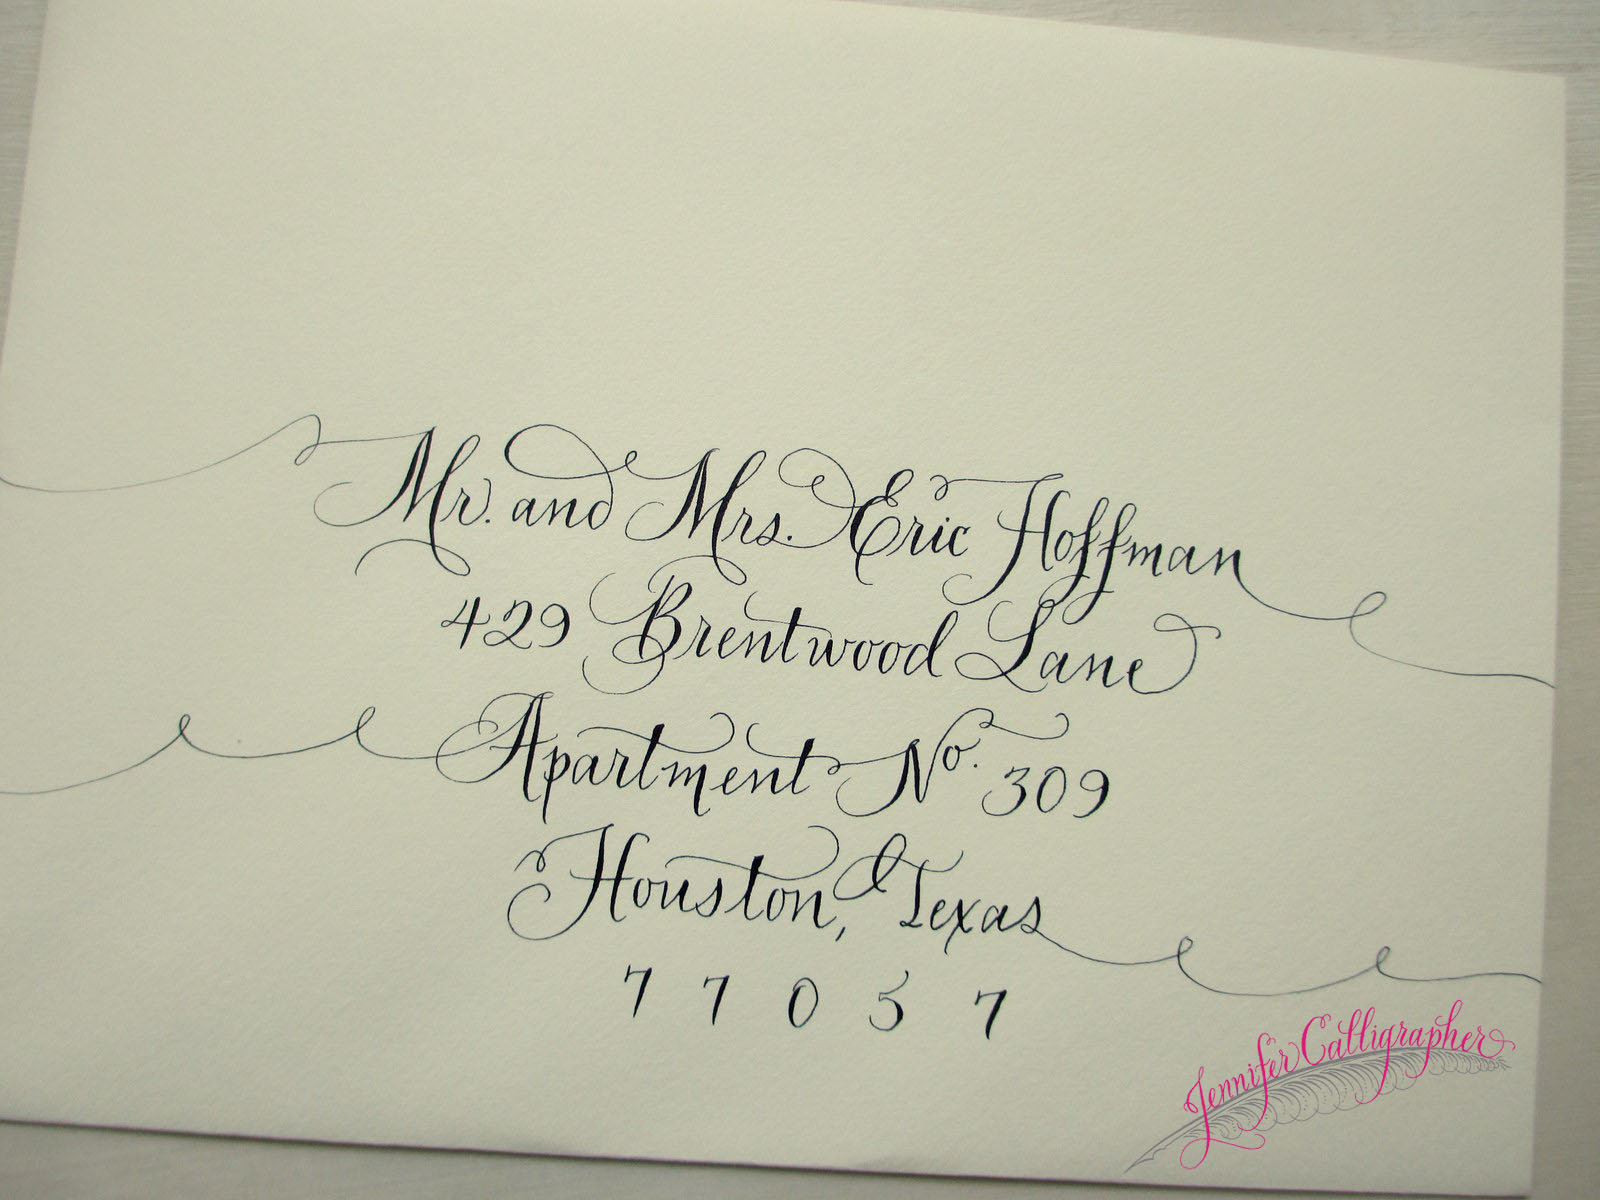 Pricing Jennifer Calligrapher